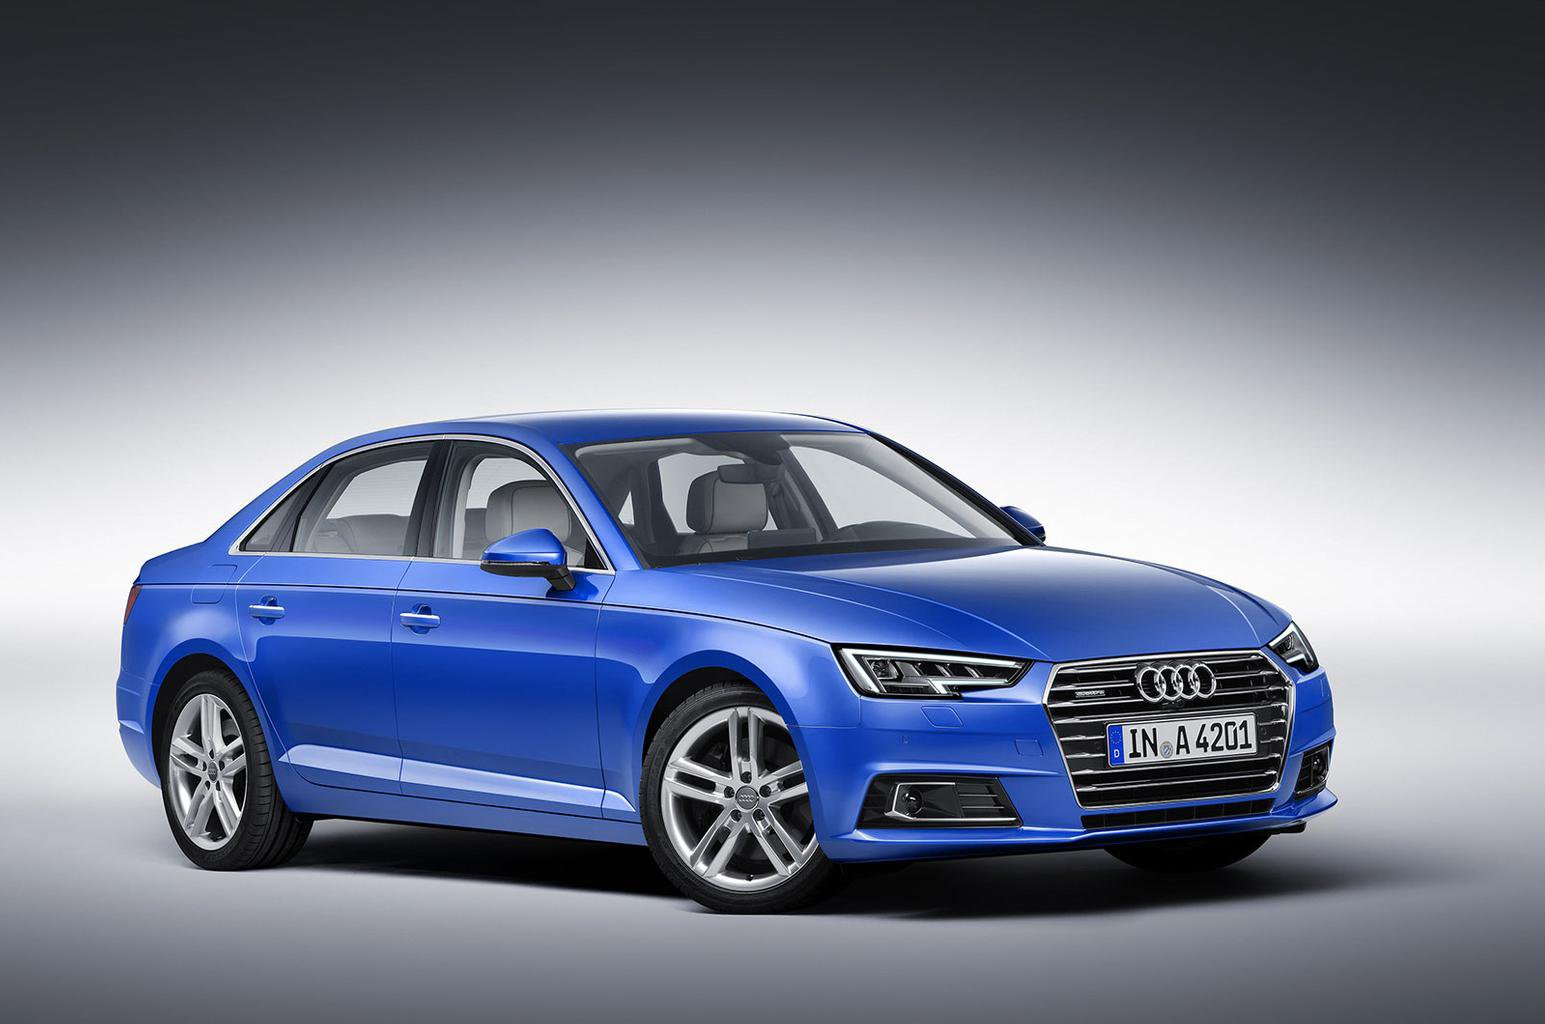 2015 Audi A4 revealed - pricing, pictures and engine details